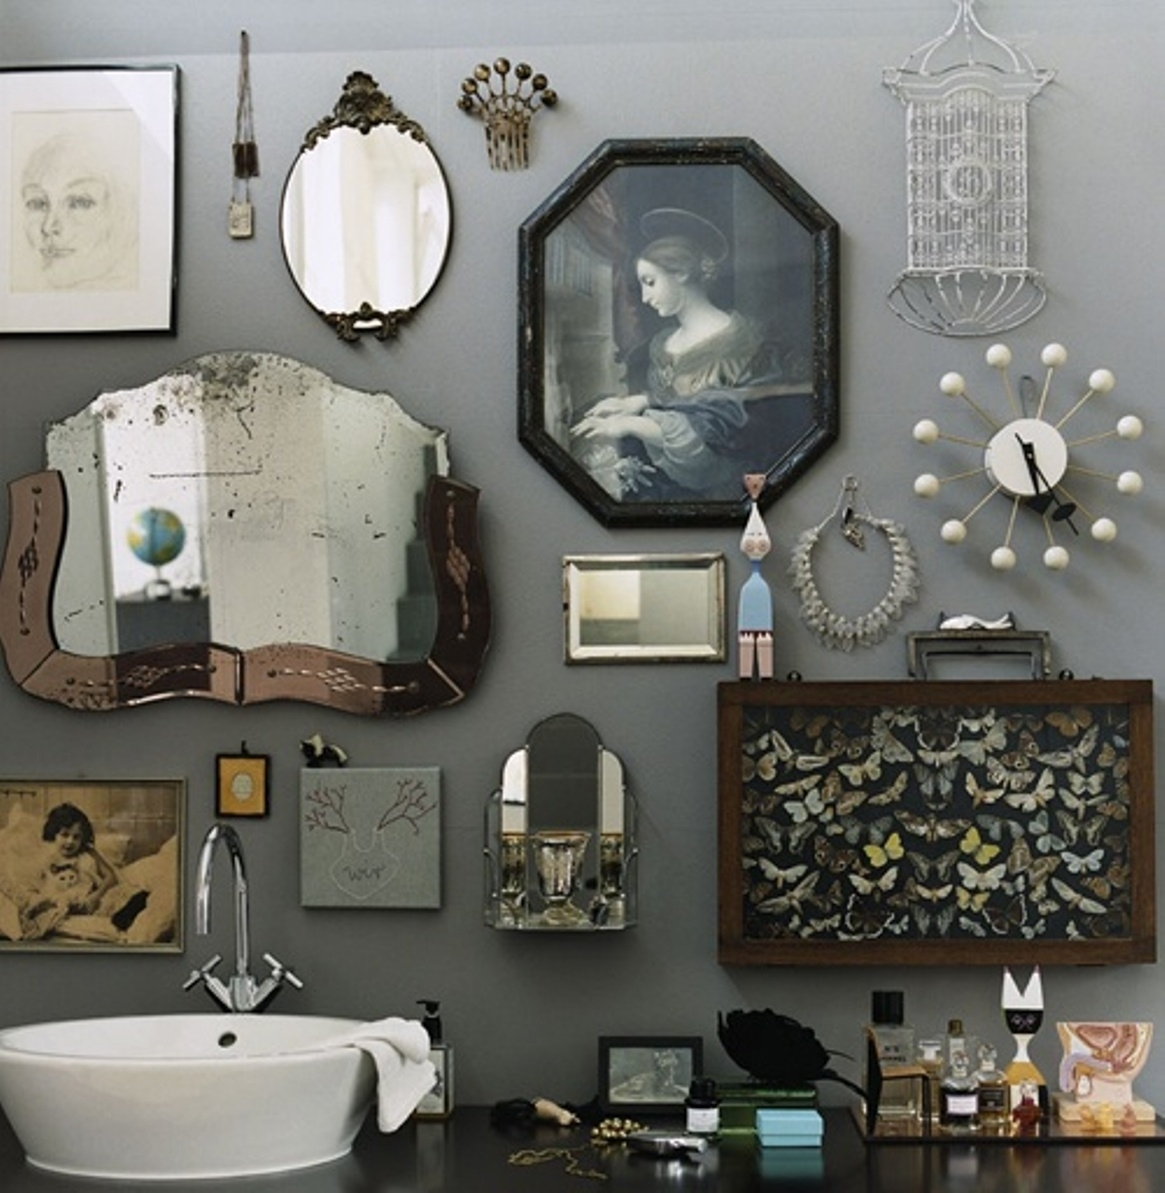 Charming Bathroom Wall Decor Inspirations — The Home Redesign Intended For Recent Vintage Wall Accents (Gallery 1 of 15)